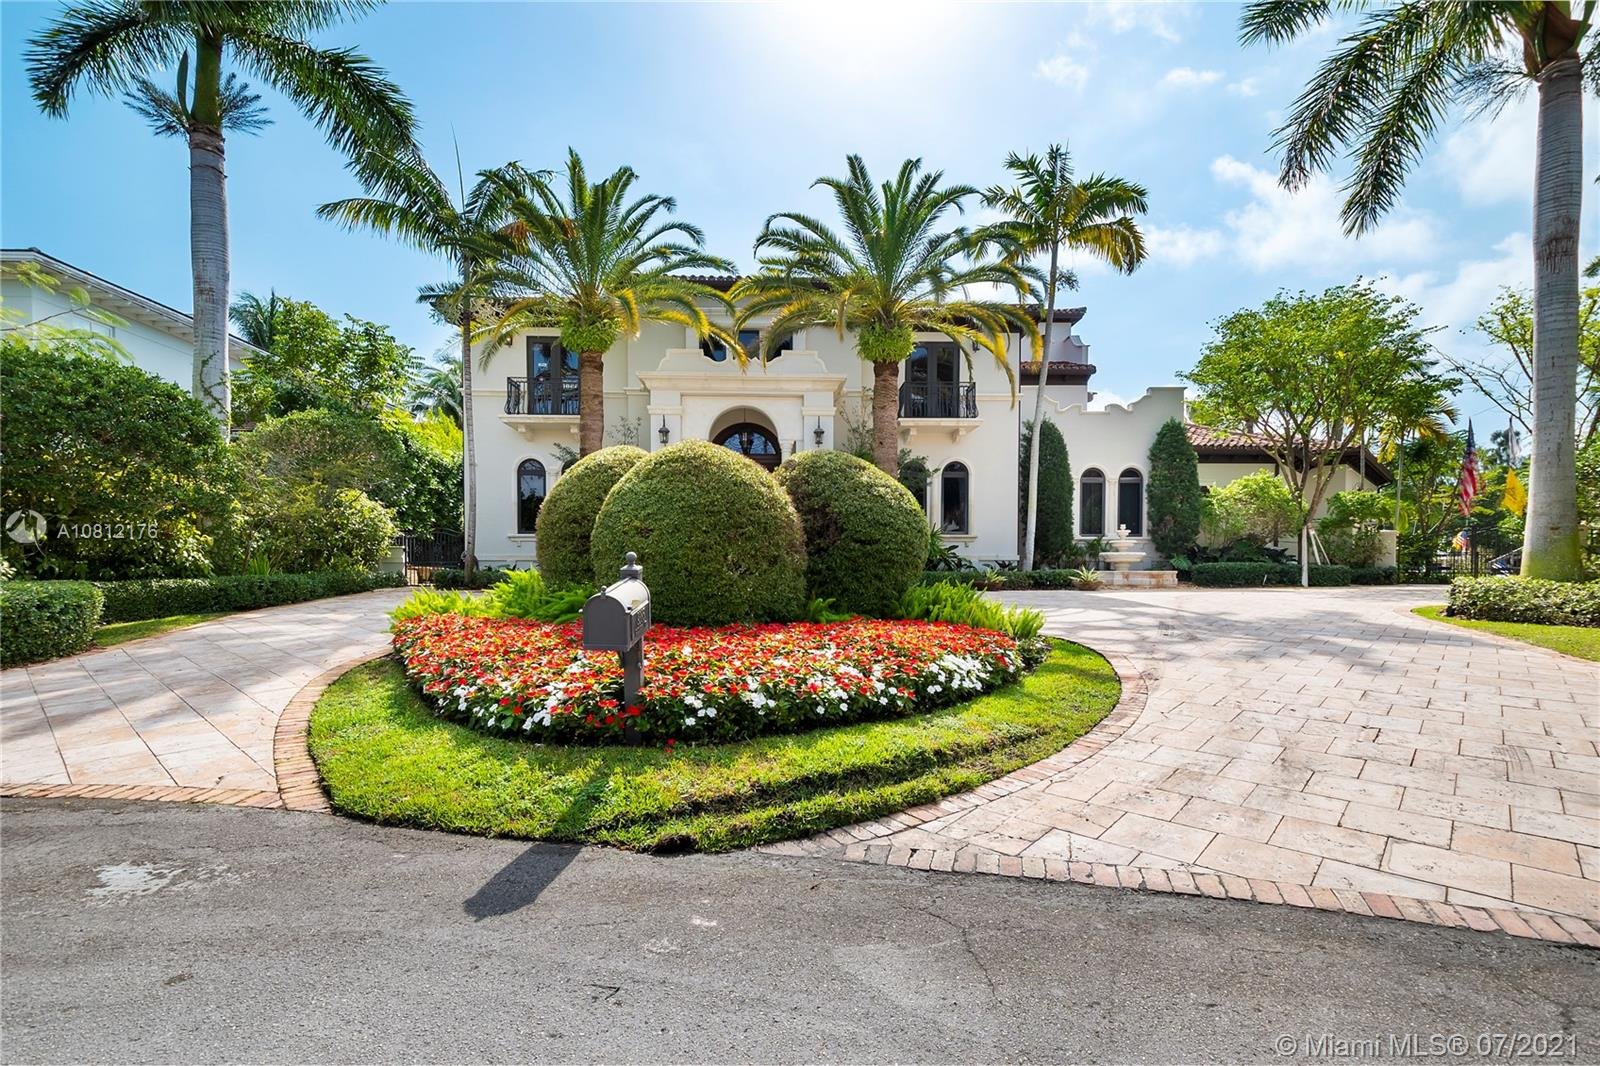 A luxurious blend of timeless old-world charm and elegant modern-day amenities awaits in this stunning 2-story waterfront residence with rooftop terrace in prestigious Old Cutler Bay. Its grand entryway with sweeping staircase welcomes you to this magnificent residence with over 200 feet of water frontage with direct access to the bay, 2 boat lifts and a 3-car garage. Created by renowned architect Pacheco, this masterpiece of design with elevator, features soaring vaulted and tray ceilings throughout, polished Italian tile and wood flooring. Custom solid wood doors contribute to its luxurious allure. Lavish entertaining and living areas all open to sprawling terraces overlooking fountained pool and spa. Master suite features generous walk-in wardrobes, jacuzzi tub, office and balcony.